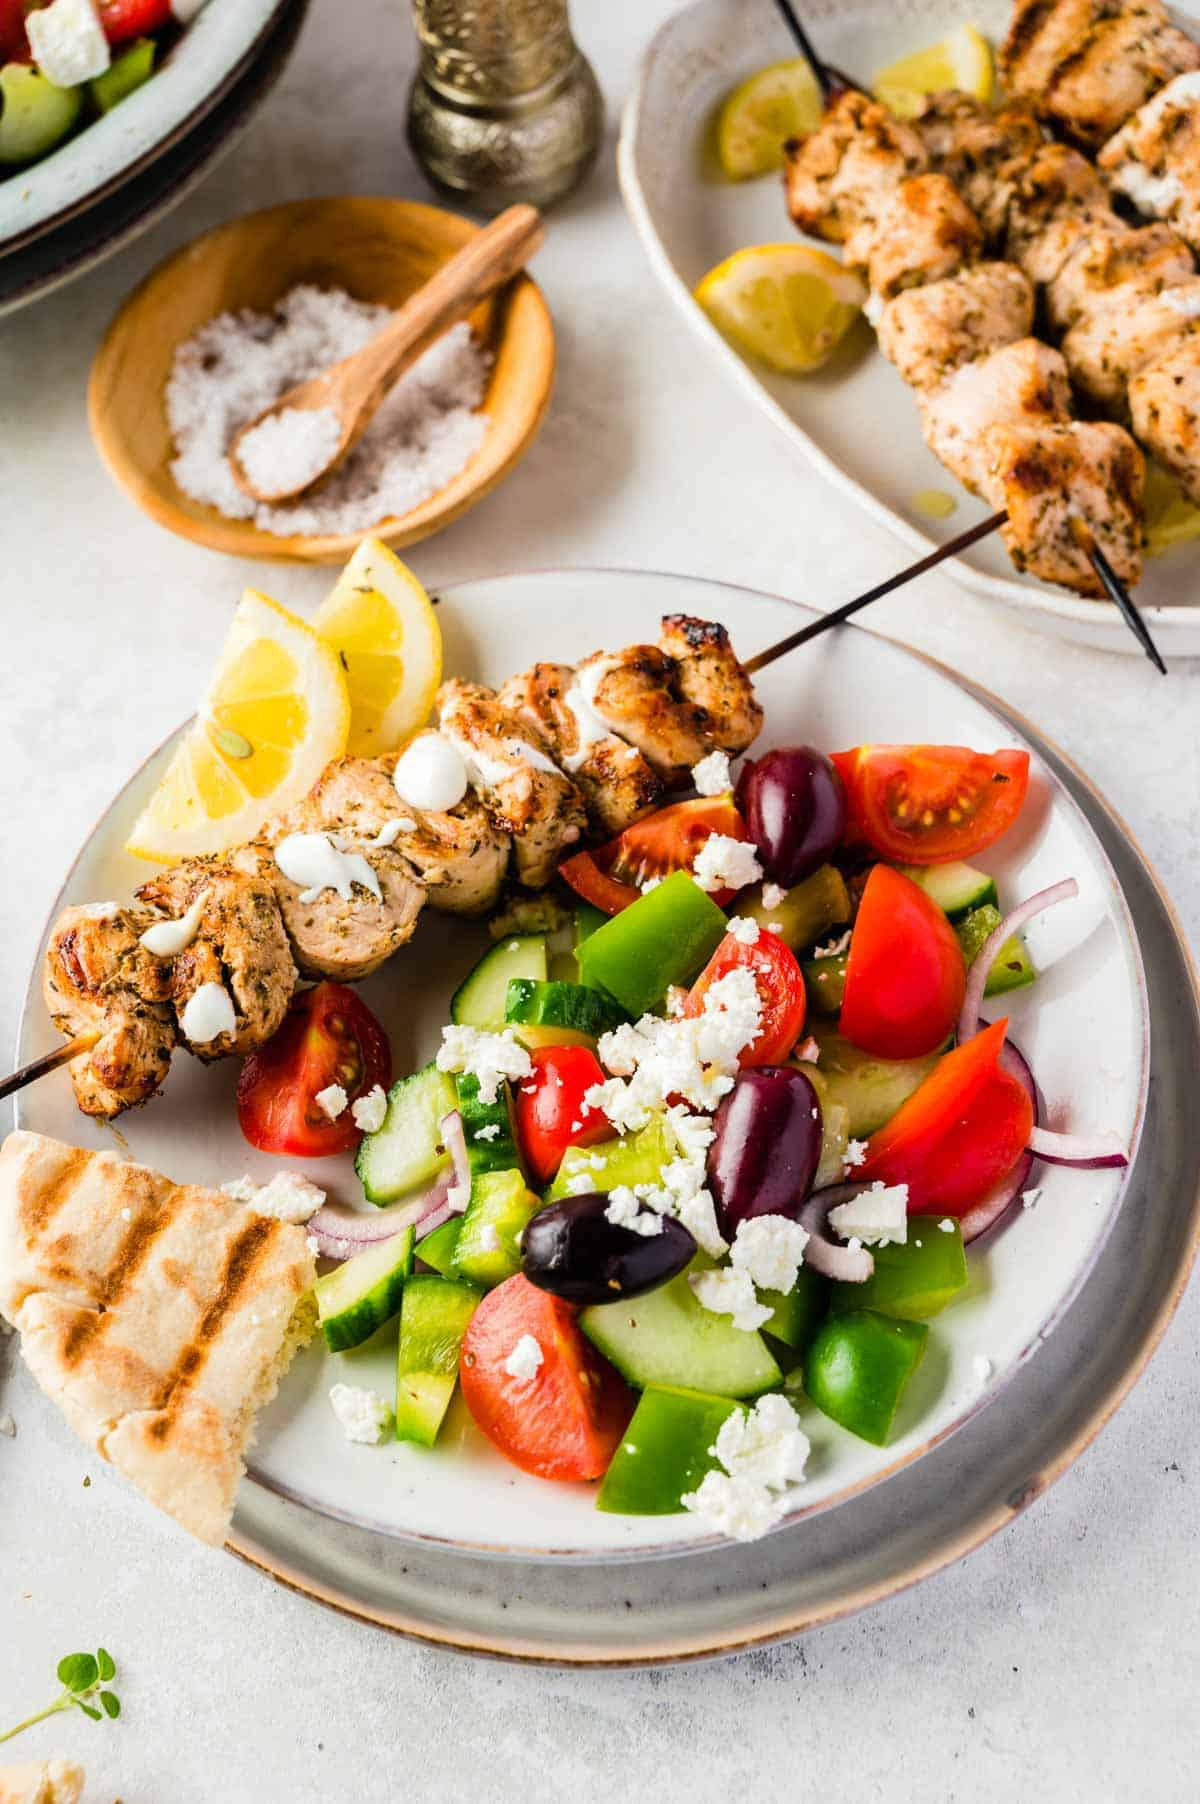 A Plate of Chicken Skewers, Pita Bread and Greek Salad Beside a Small Dish of Coarse Salt